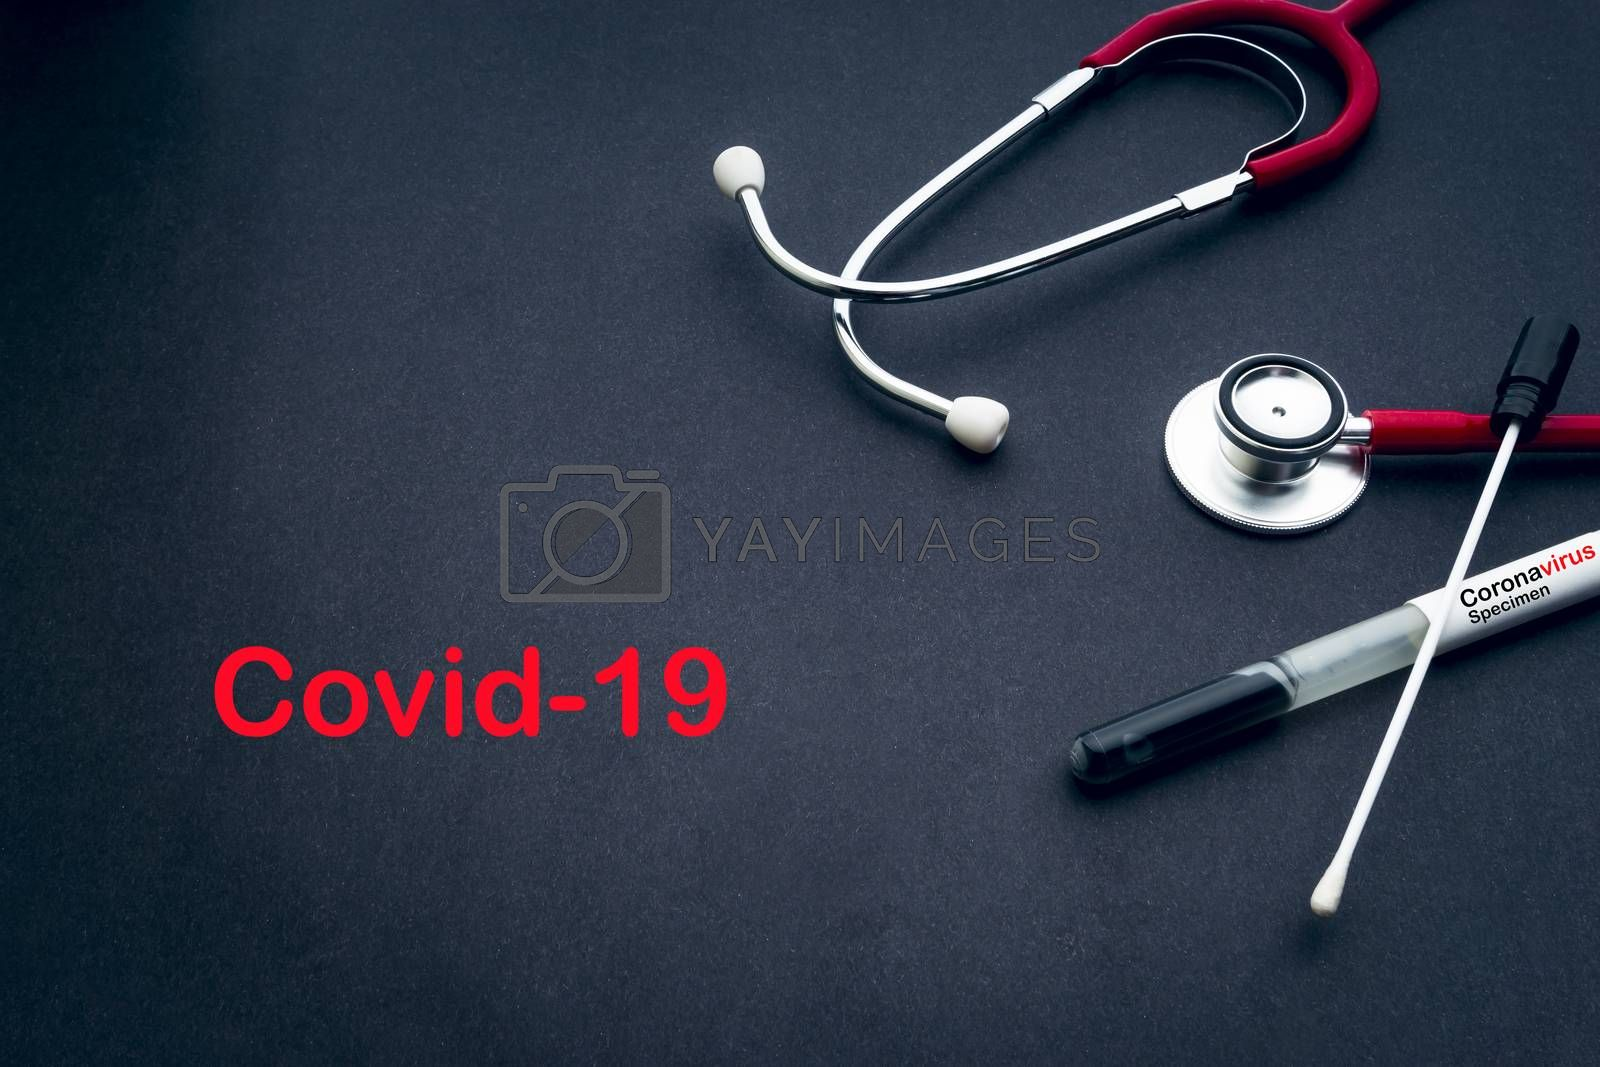 COVID-19 text with stethoscope and medical swabs on black background. Covid -19 or Coronavirus Concept